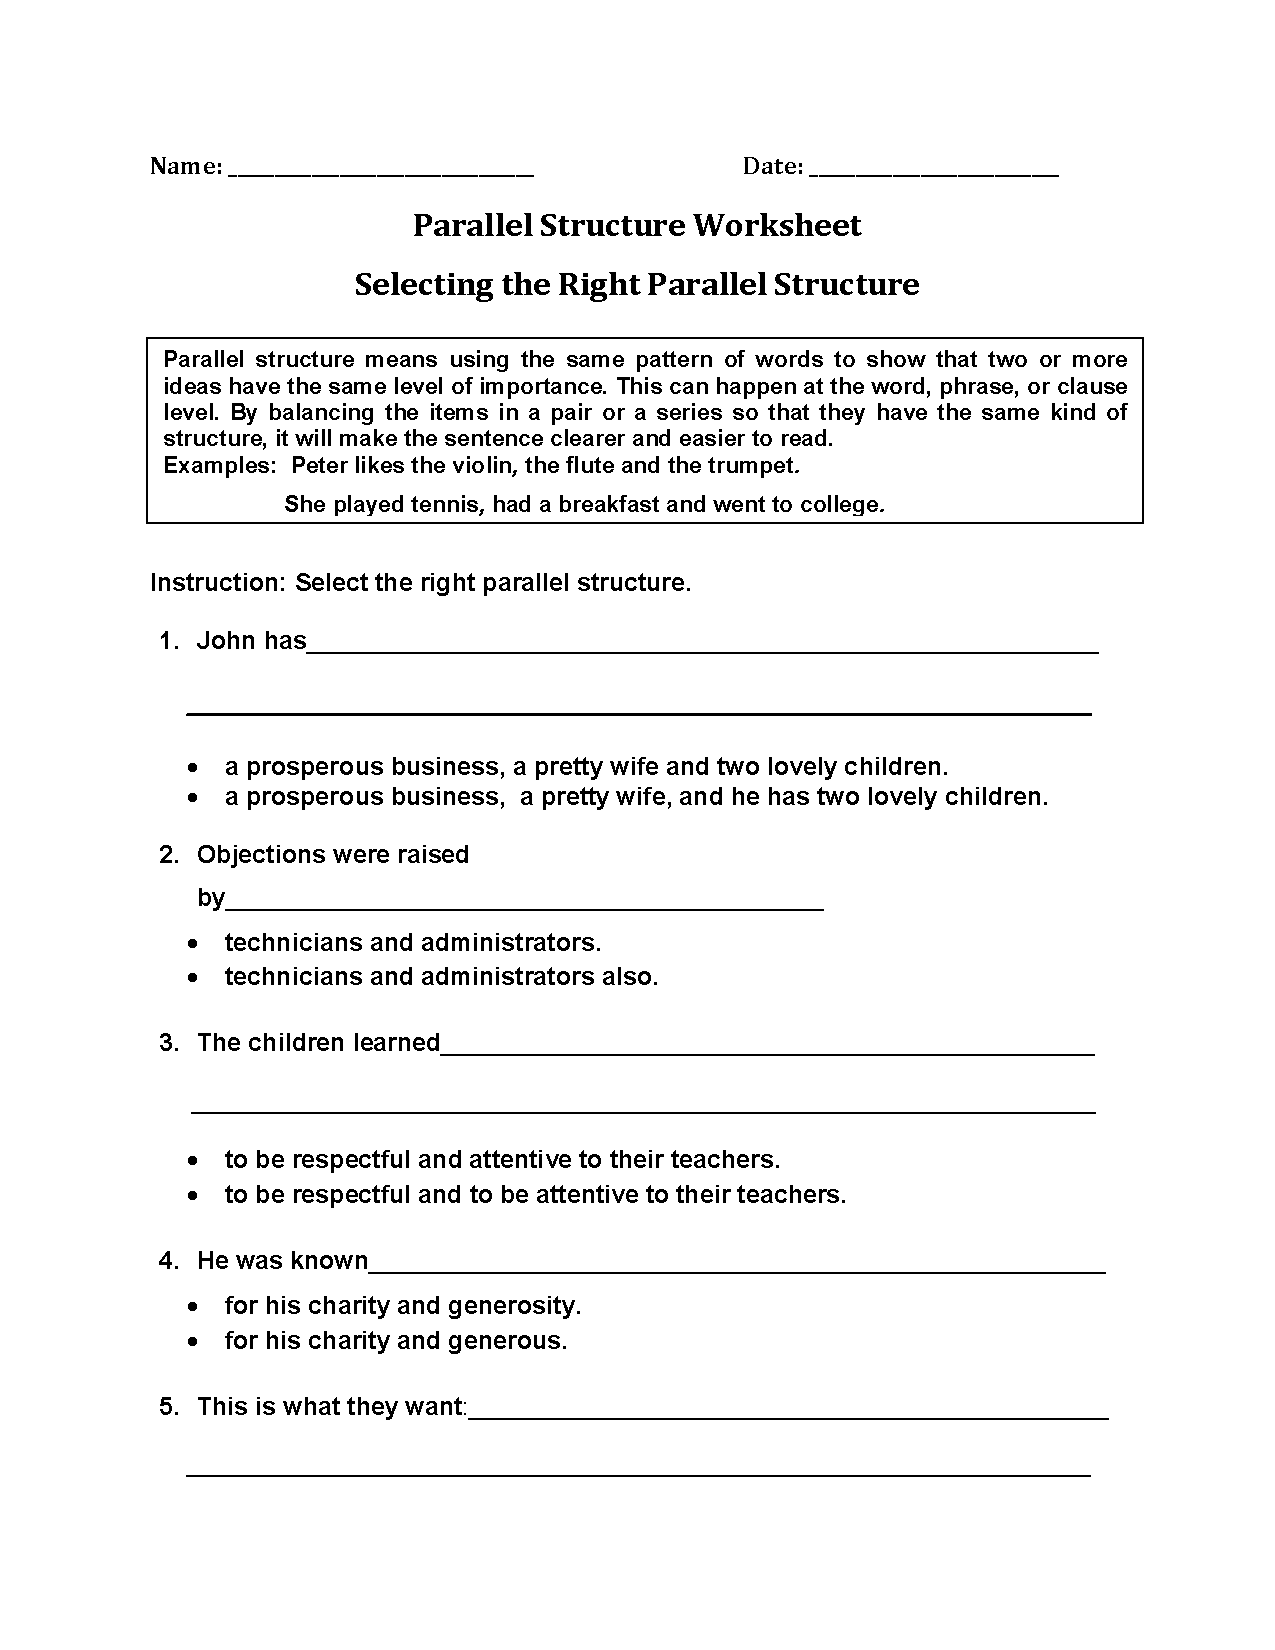 Parallel Structure Worksheets | Selecting Right Parallel Structure ...